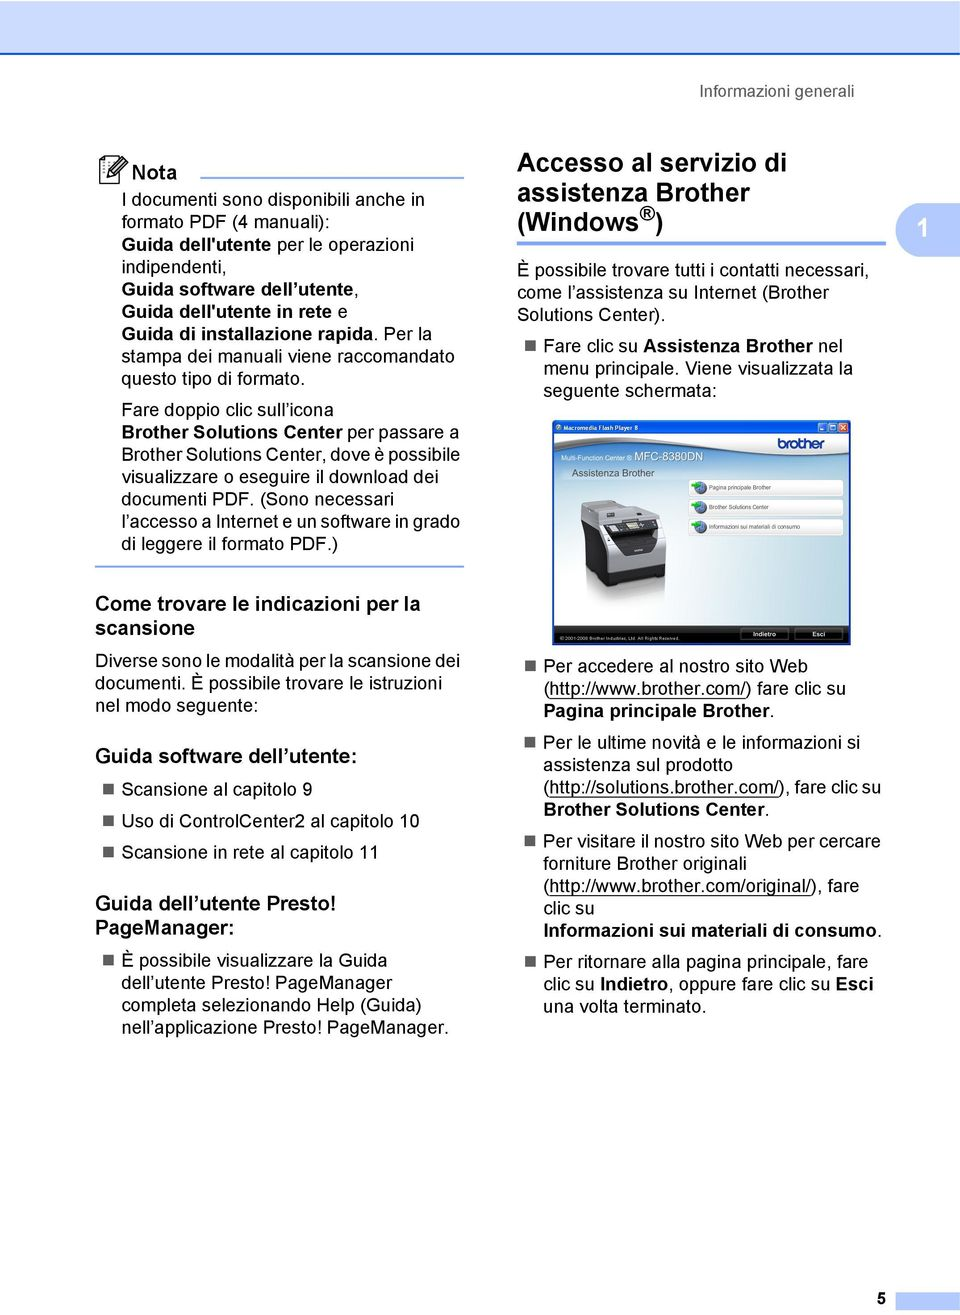 Fare doppio clic sull icona Brother Solutions Center per passare a Brother Solutions Center, dove è possibile visualizzare o eseguire il download dei documenti PDF.